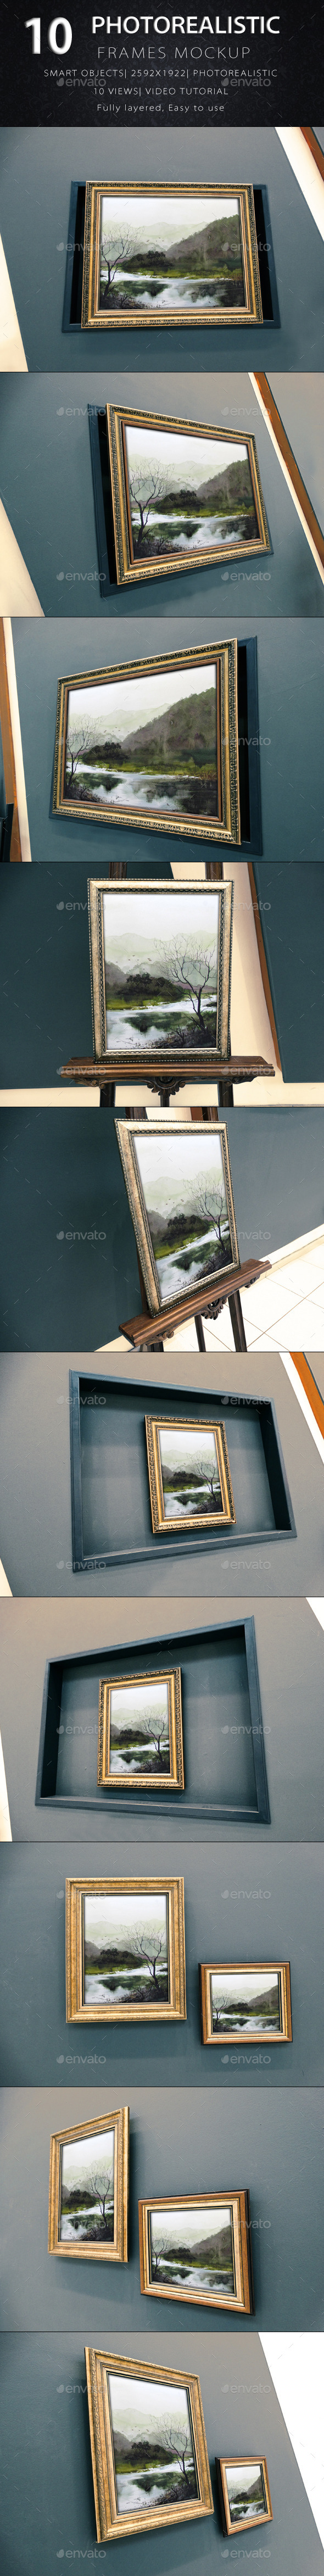 GraphicRiver Photorealistic Frame Mock Up Vol.3 9195780